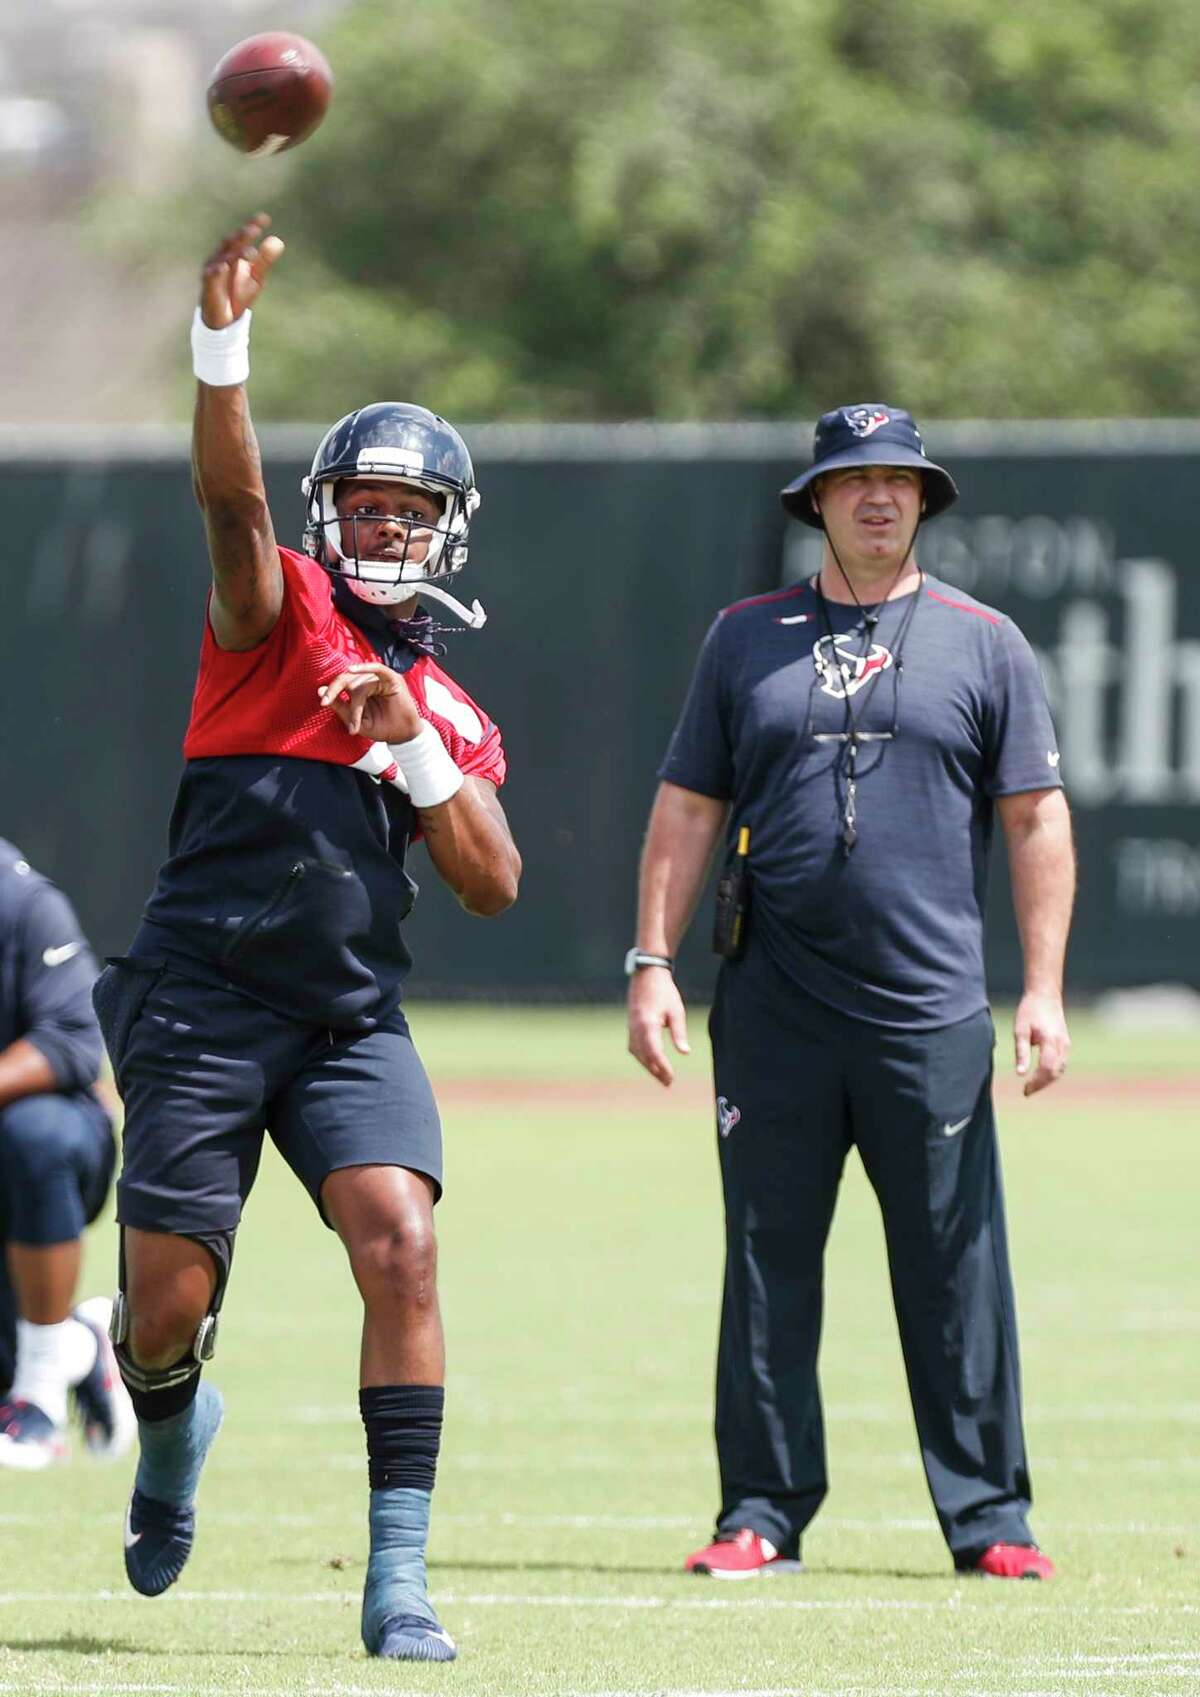 Houston Texans NFL football quarterback Deshaun Watson throws a pass in front of head coach Bill O'Brien during practice in Houston, Tuesday, May 22, 2018. (Brett Coomer/Houston Chronicle via AP)